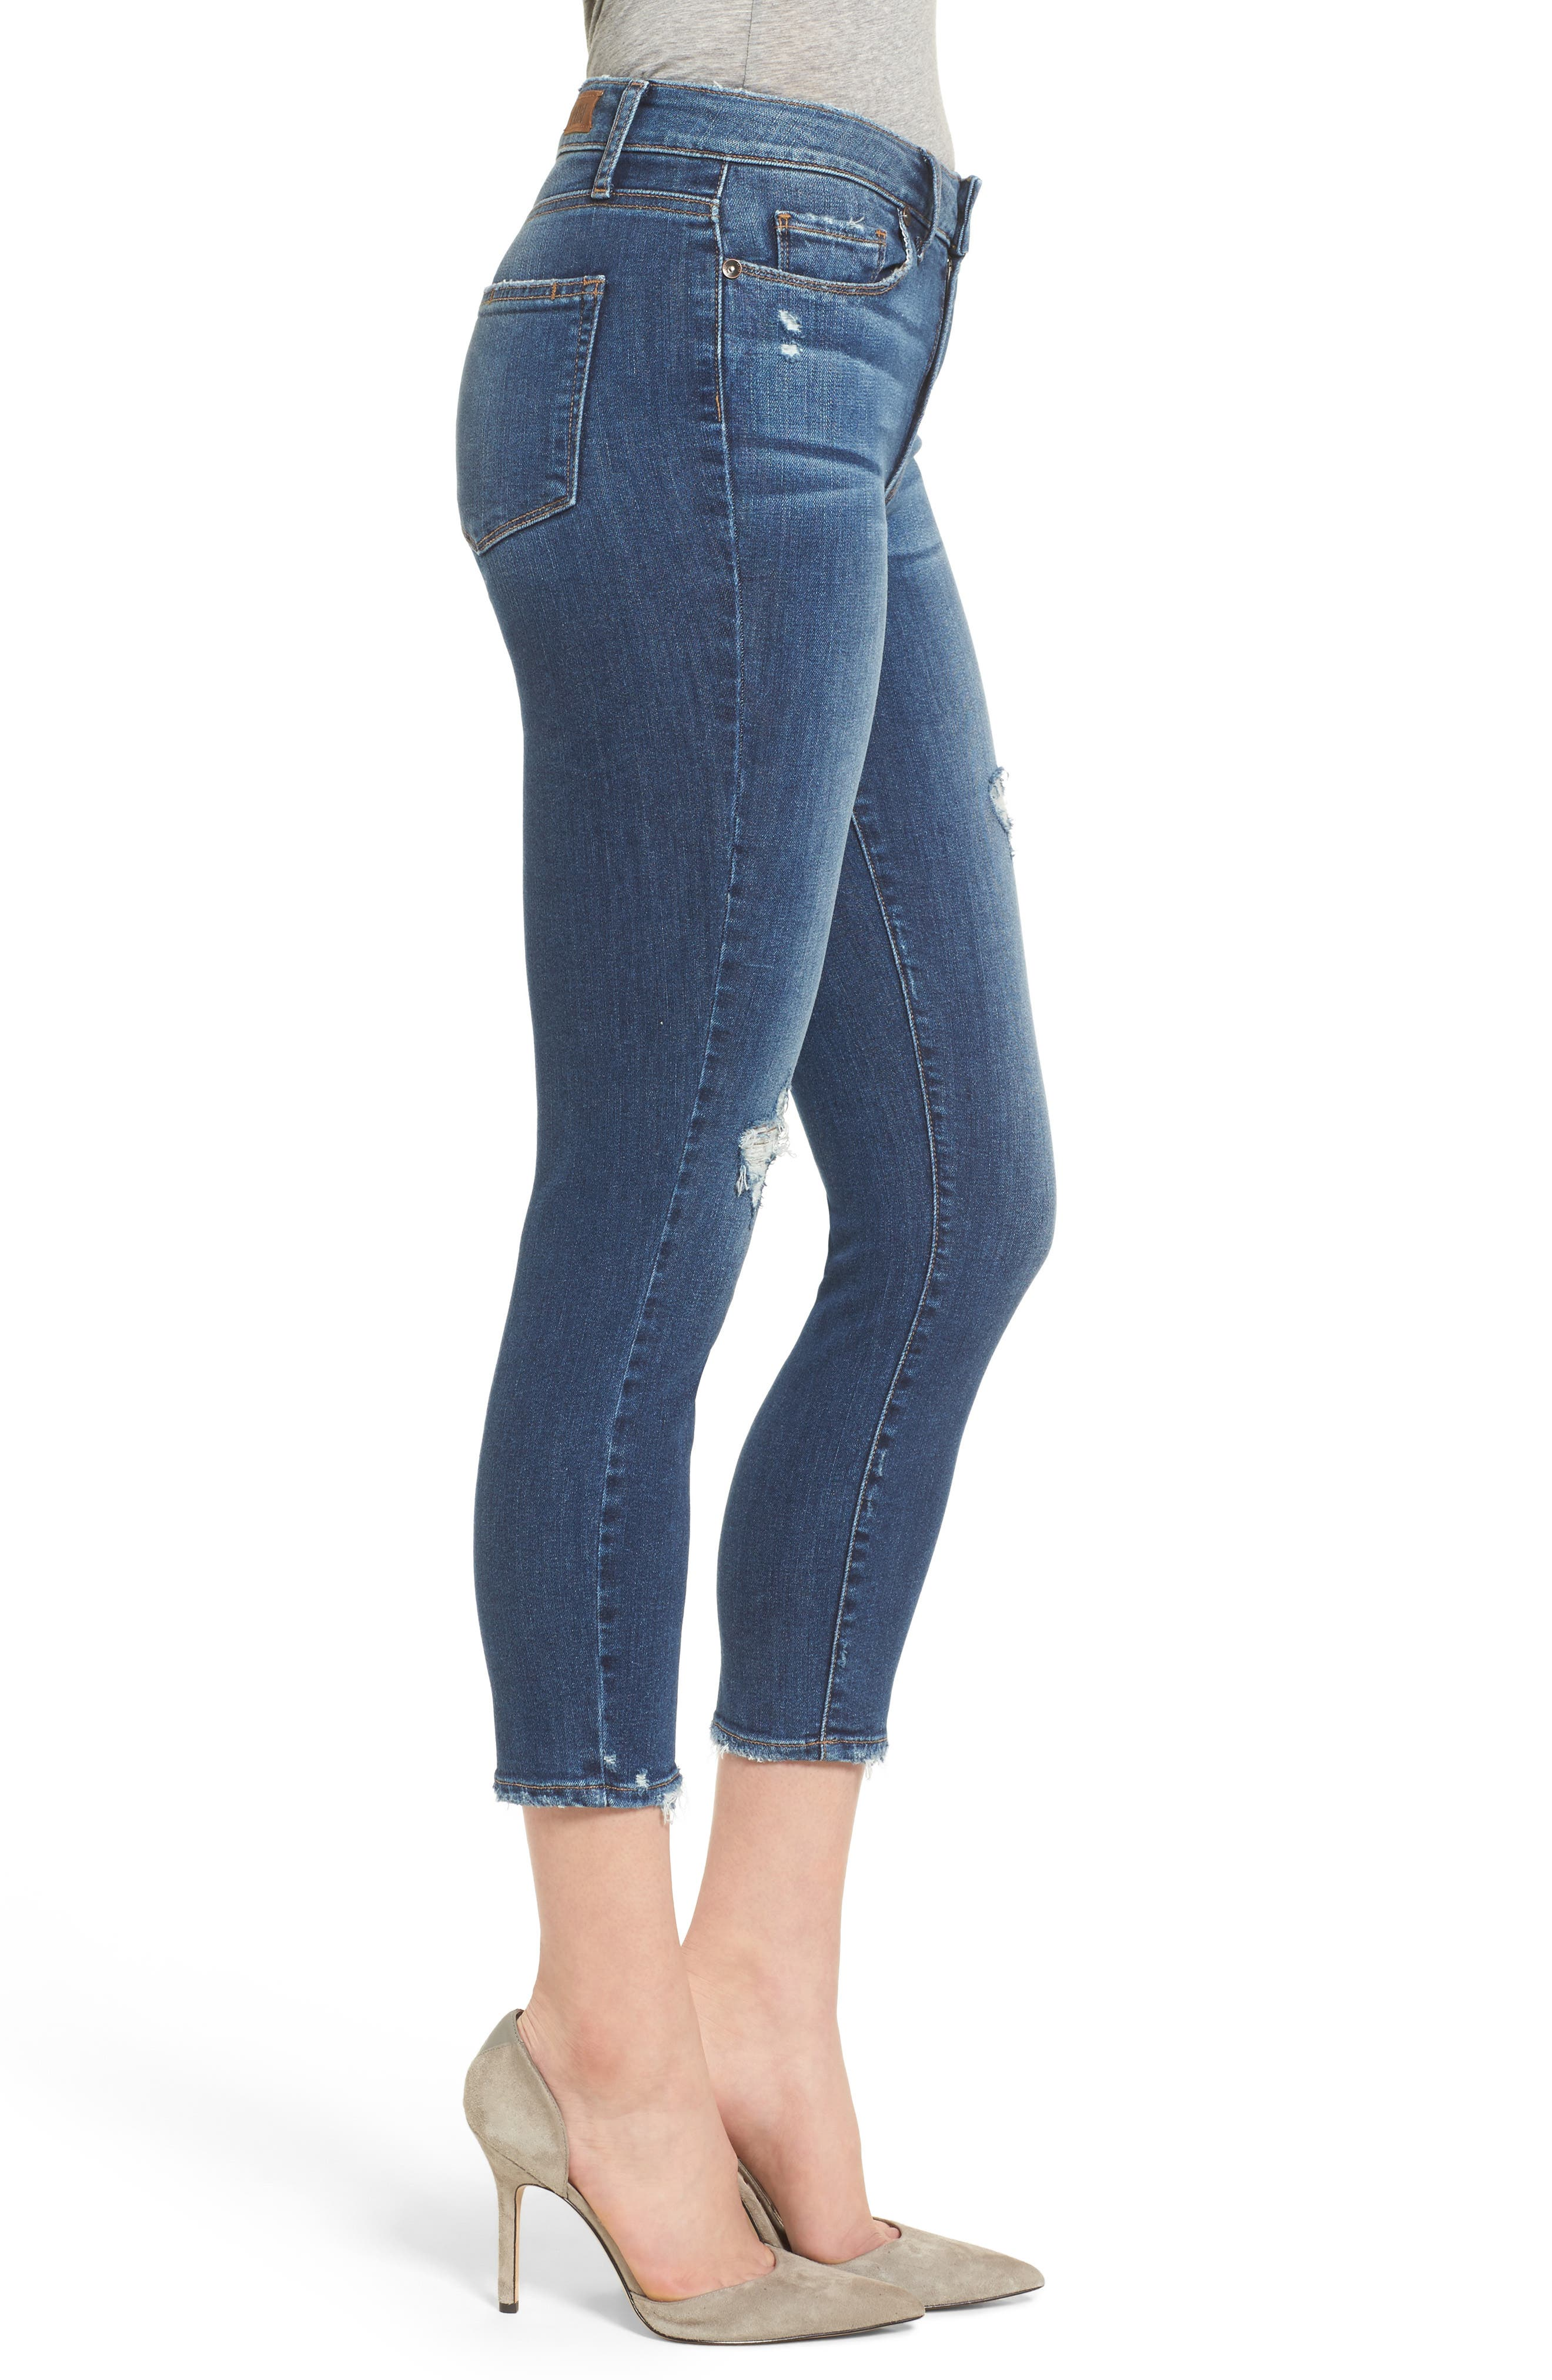 Transcend - Hoxton High Waist Crop Skinny Jeans,                             Alternate thumbnail 3, color,                             Nora Destructed